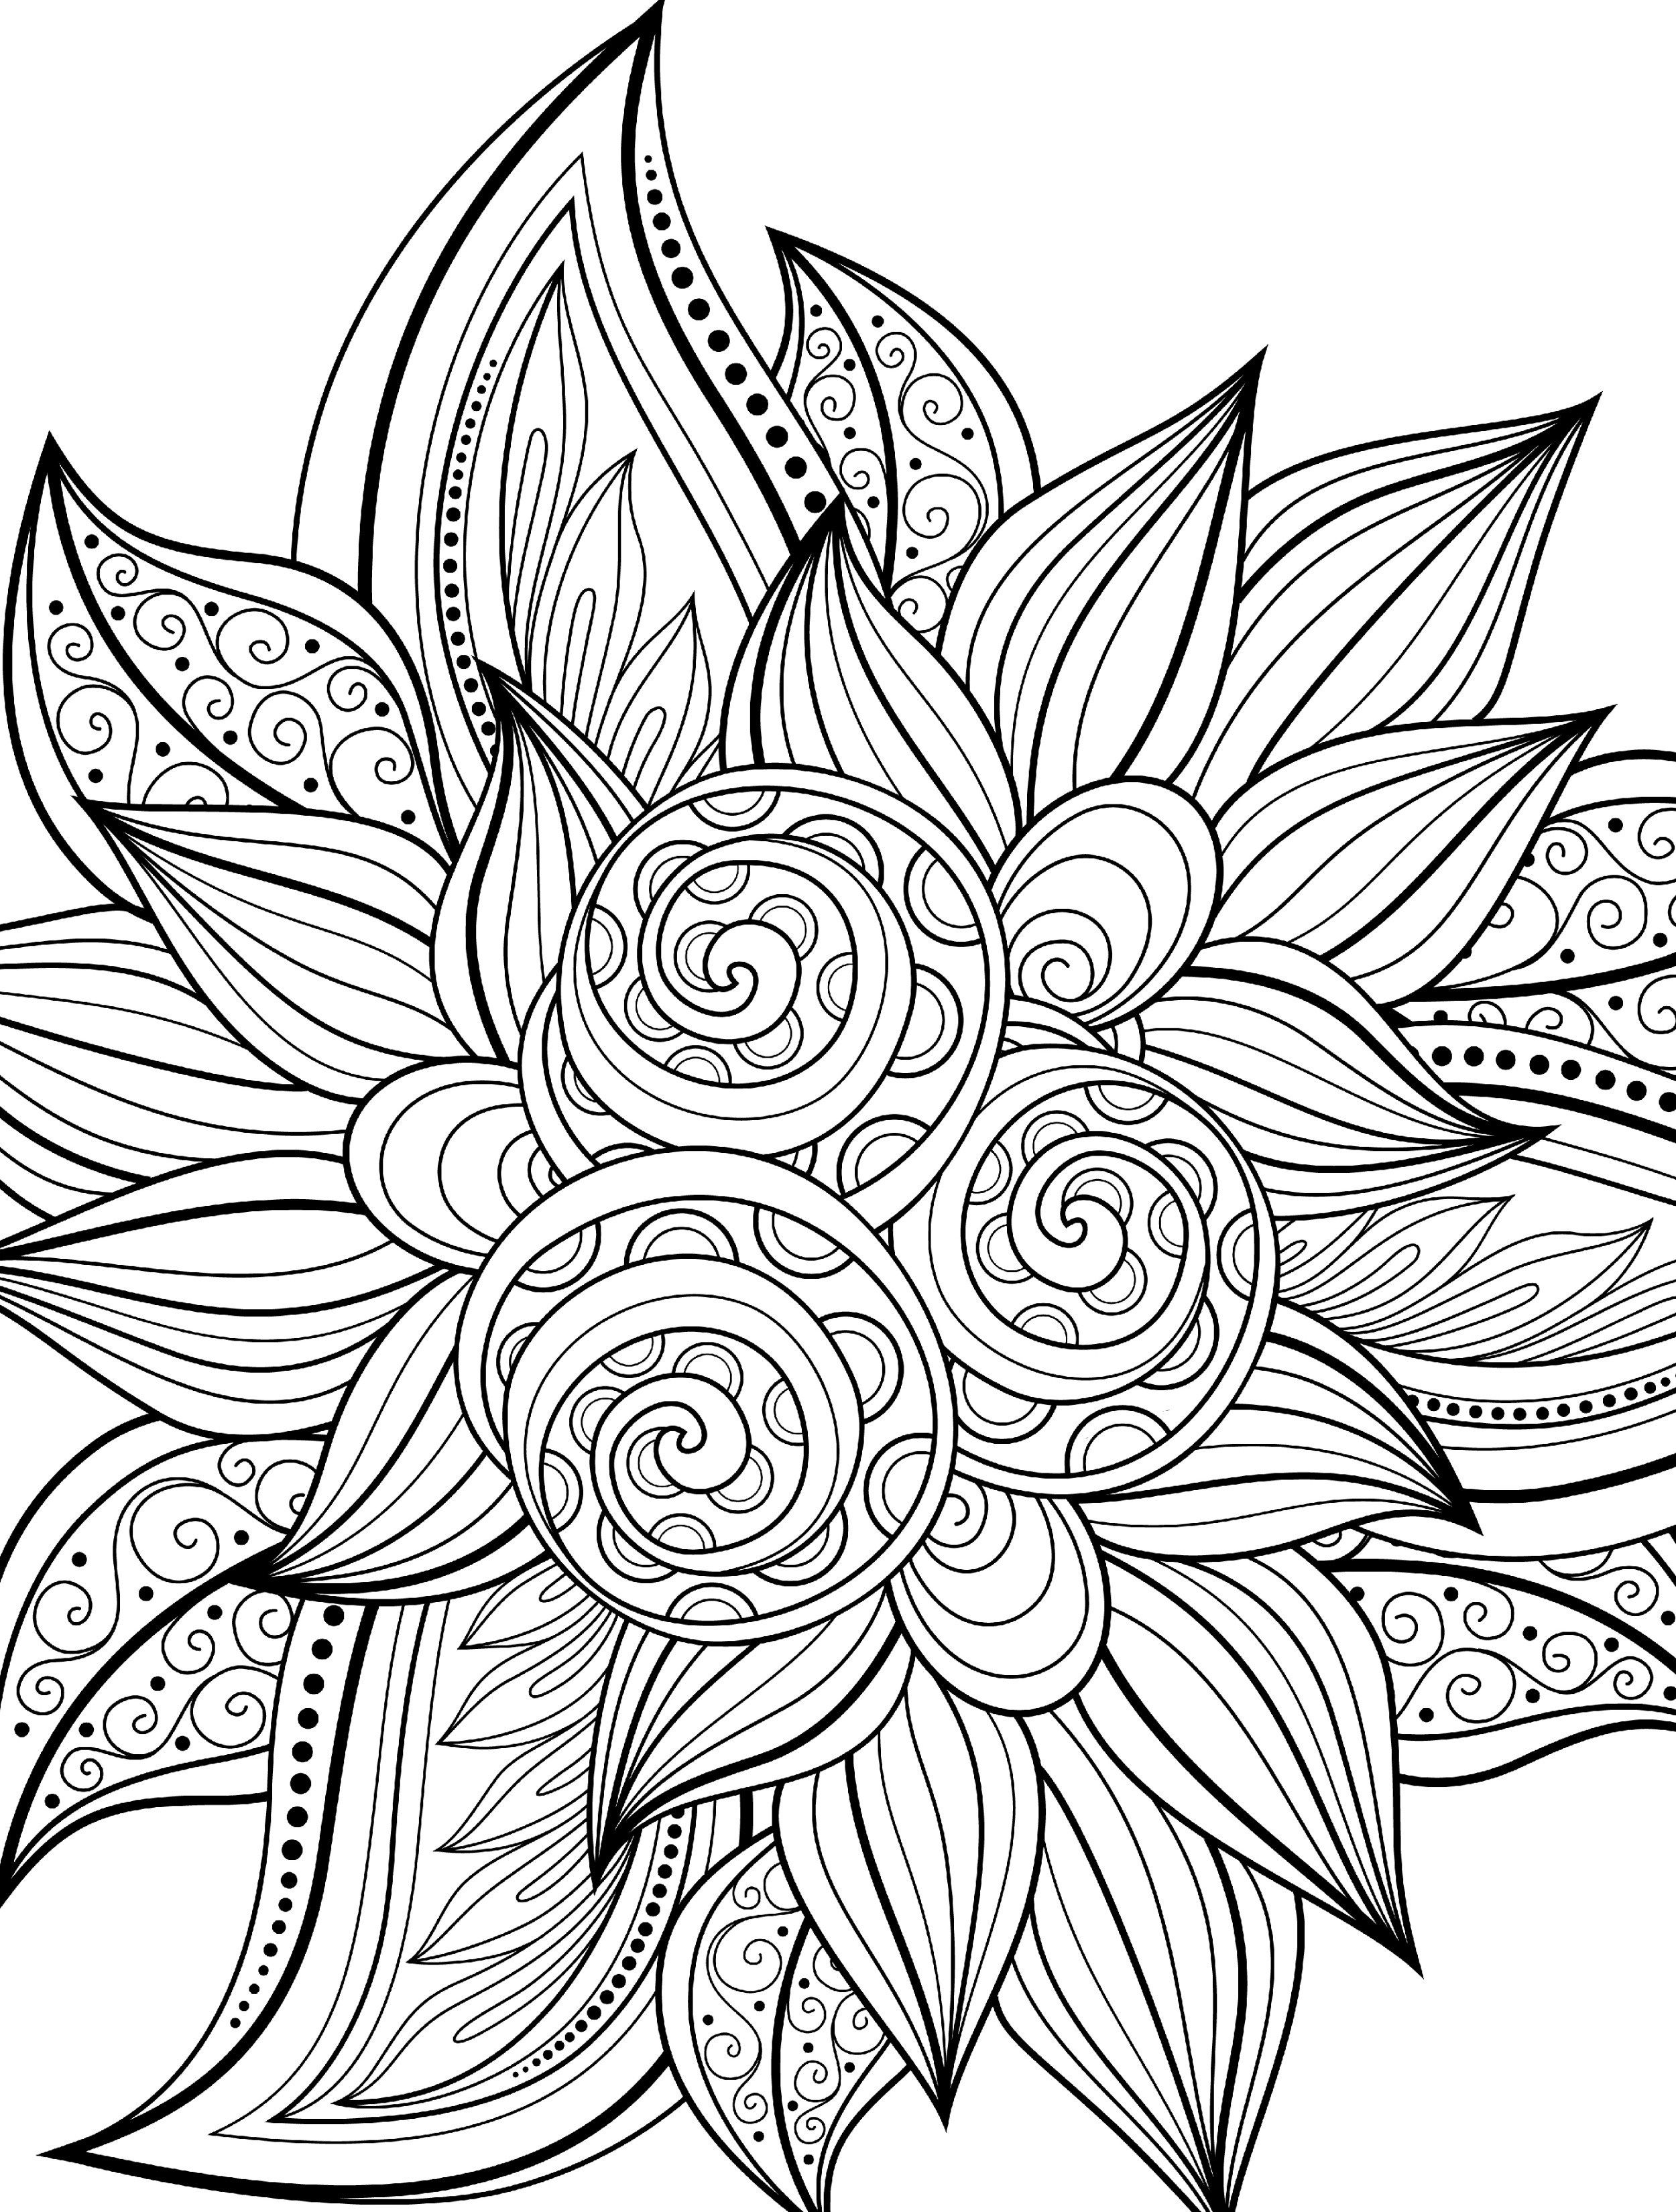 Free colouring pages for 10 year olds - 10 Free Printable Holiday Adult Coloring Pages